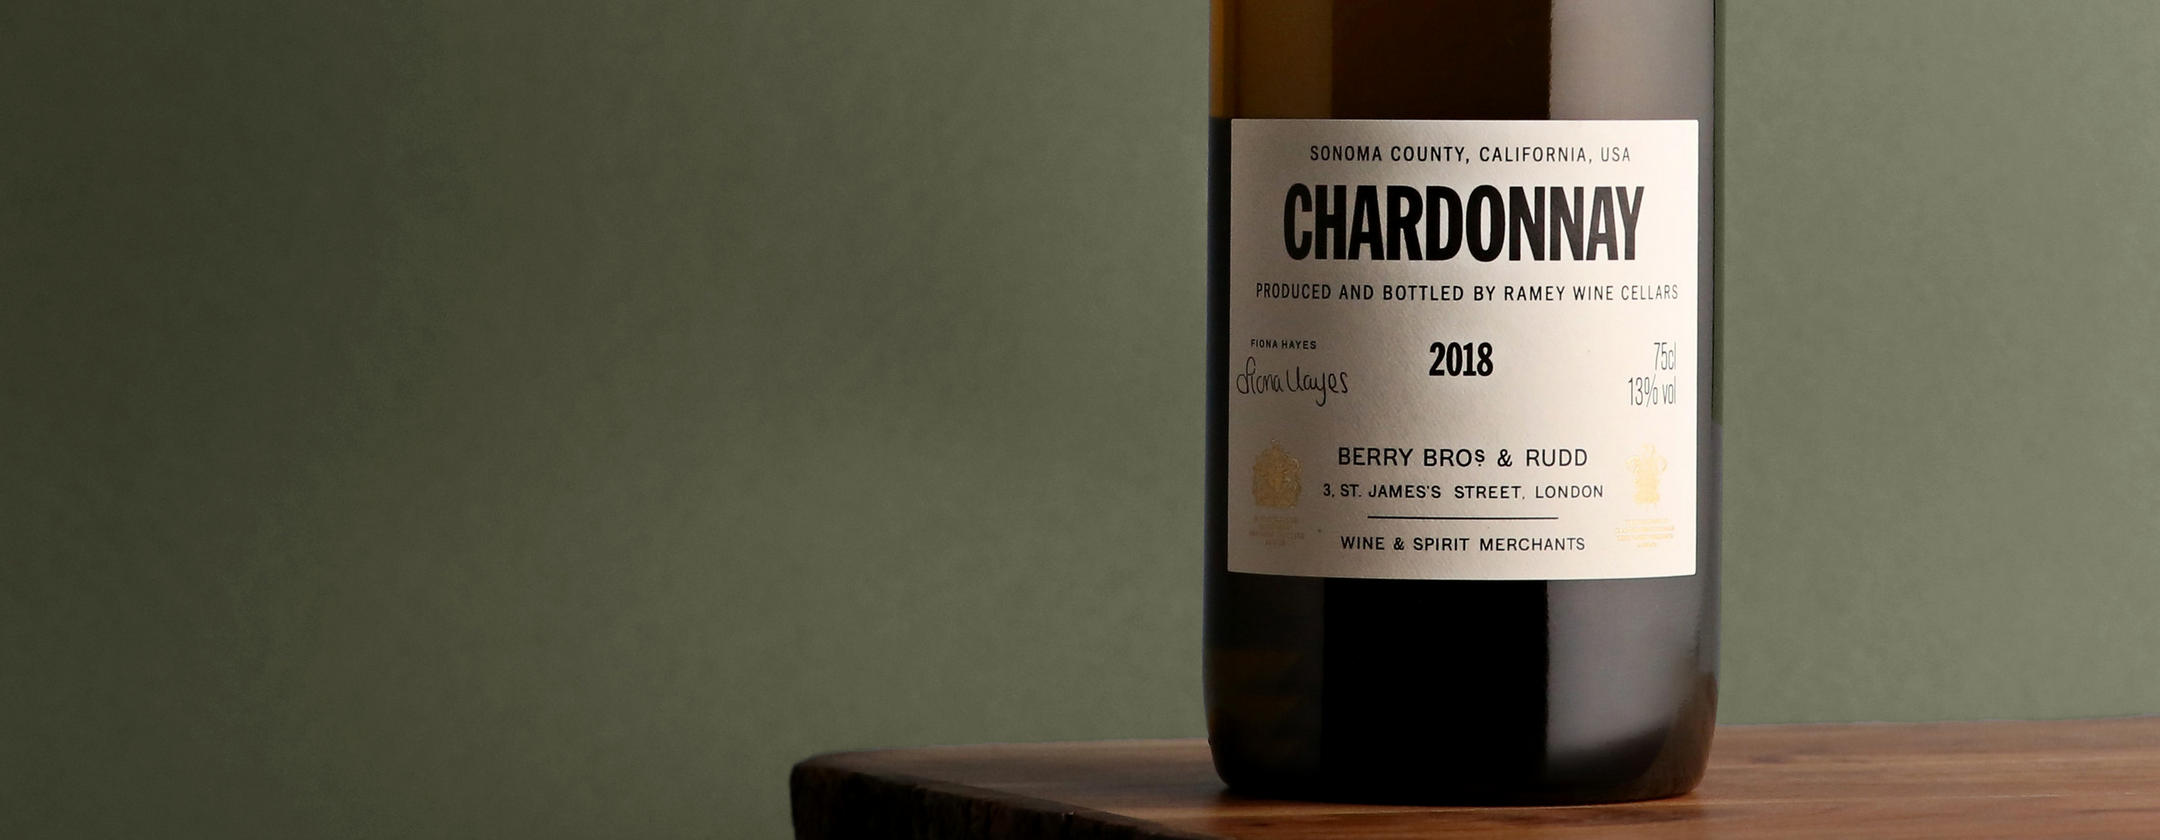 New to our Own Selection  _  Introducing our ripe and complex Chardonnay from California pioneer David Ramey